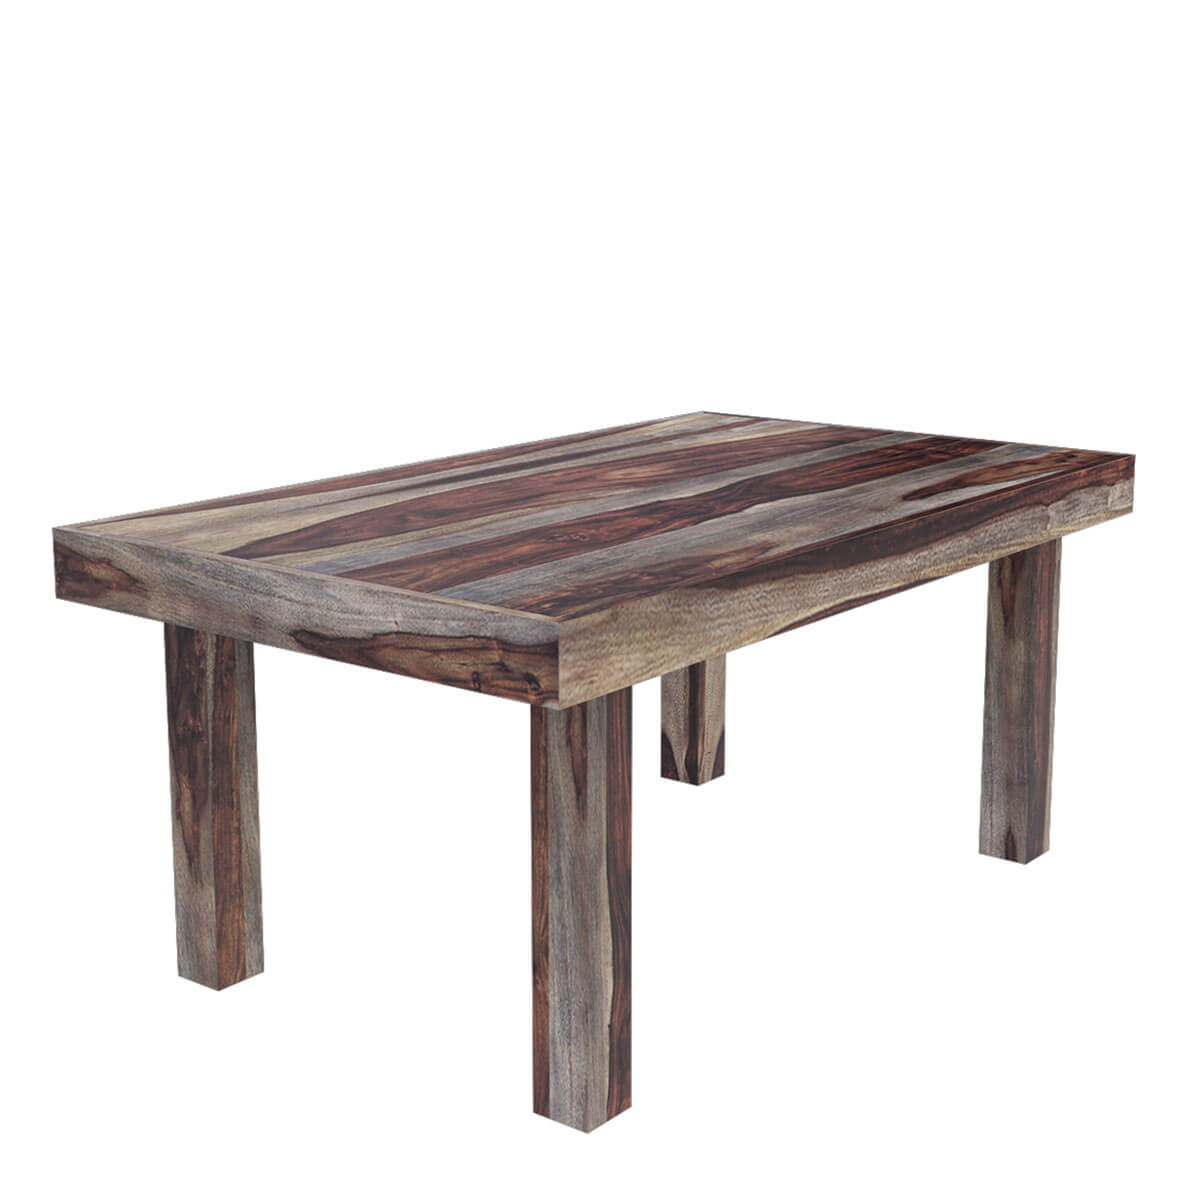 Rustic Wood Dining Room Table: Frisco Modern Solid Wood Casual Rustic Dining Room Table